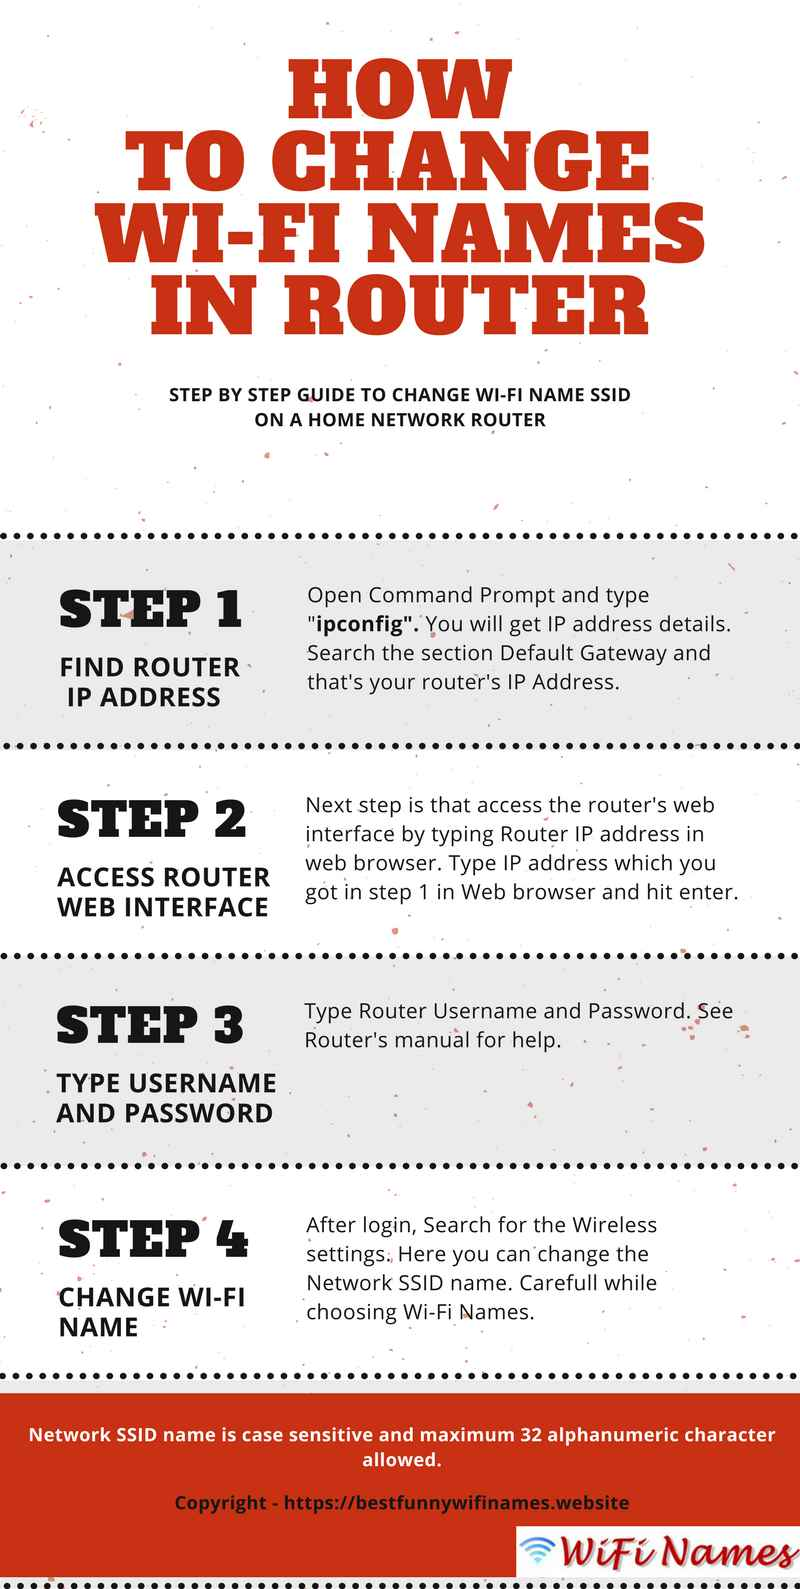 Change WiFi Name Infographic